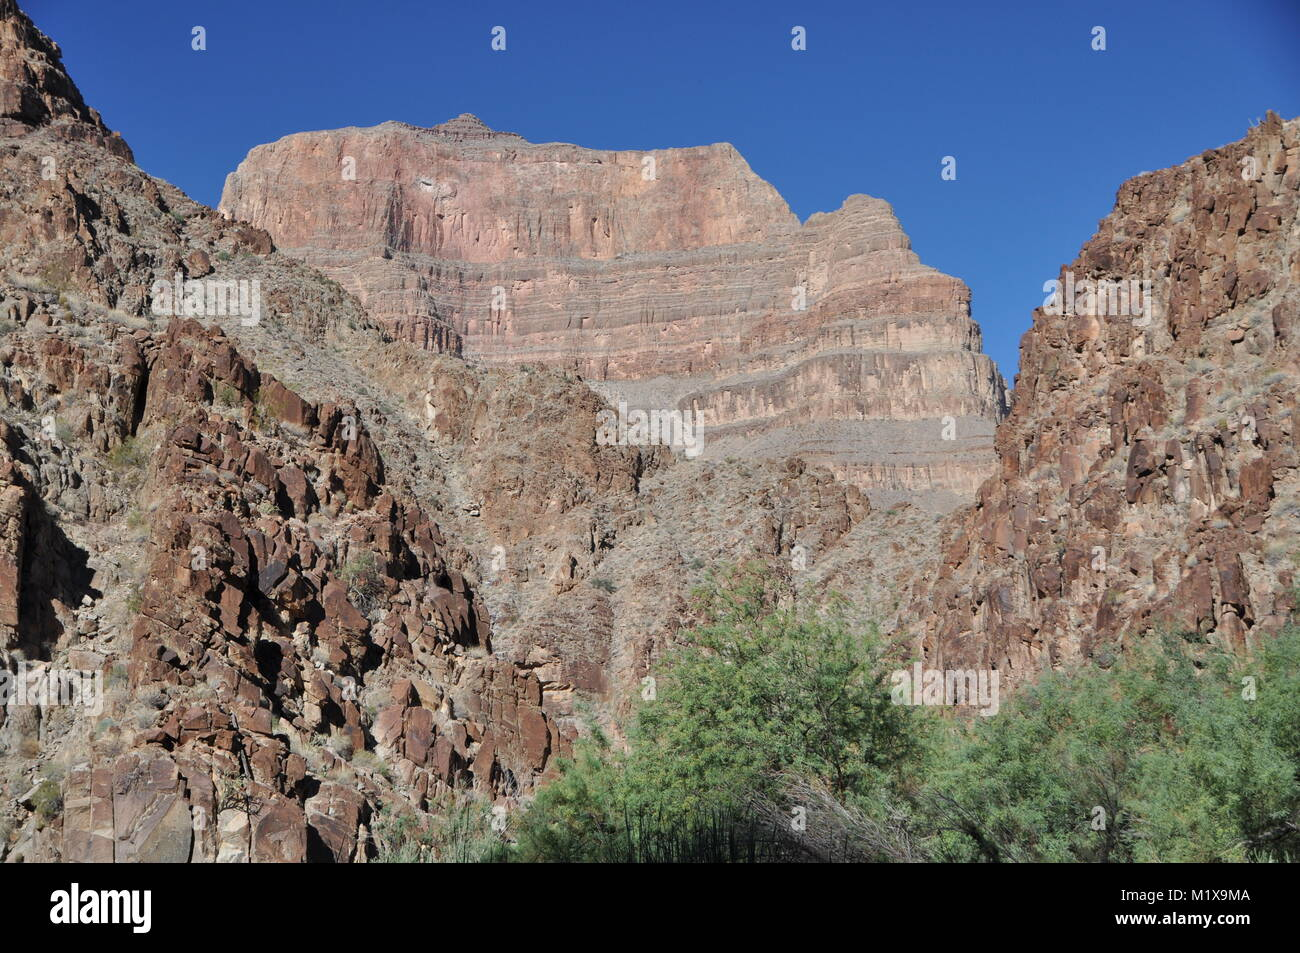 Peach Springs Canyon, a tributary to the Grand Canyon, Hualapai Indian Reservation, Arizona - Stock Image